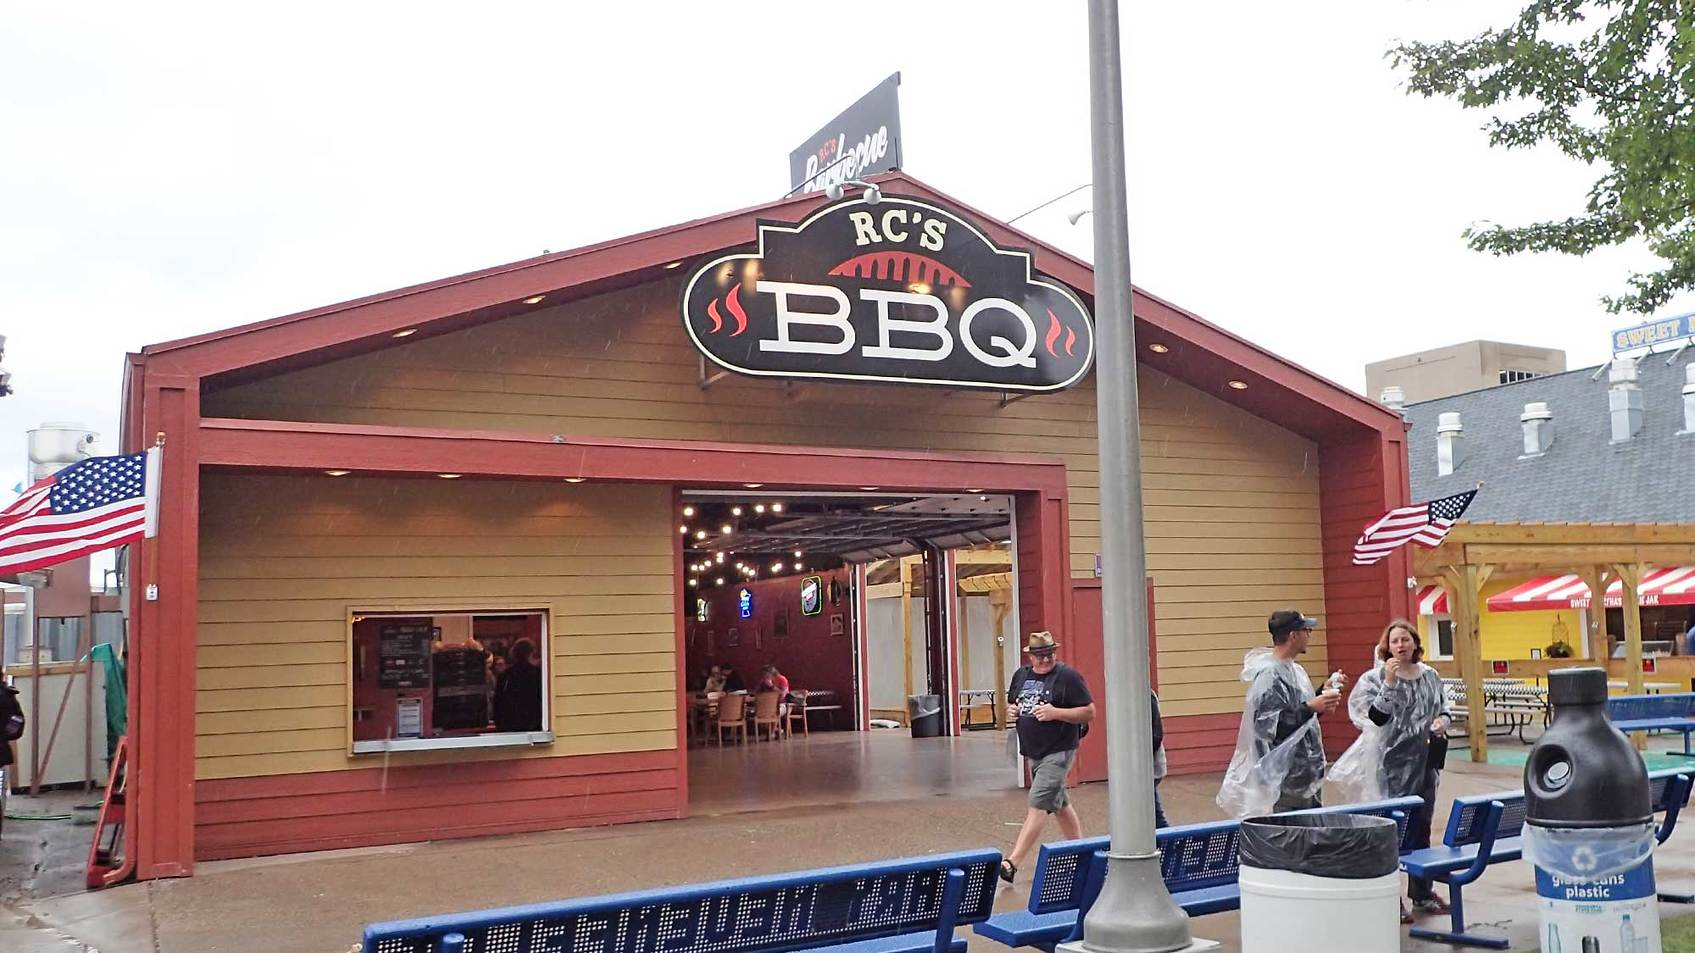 RC's BBQ